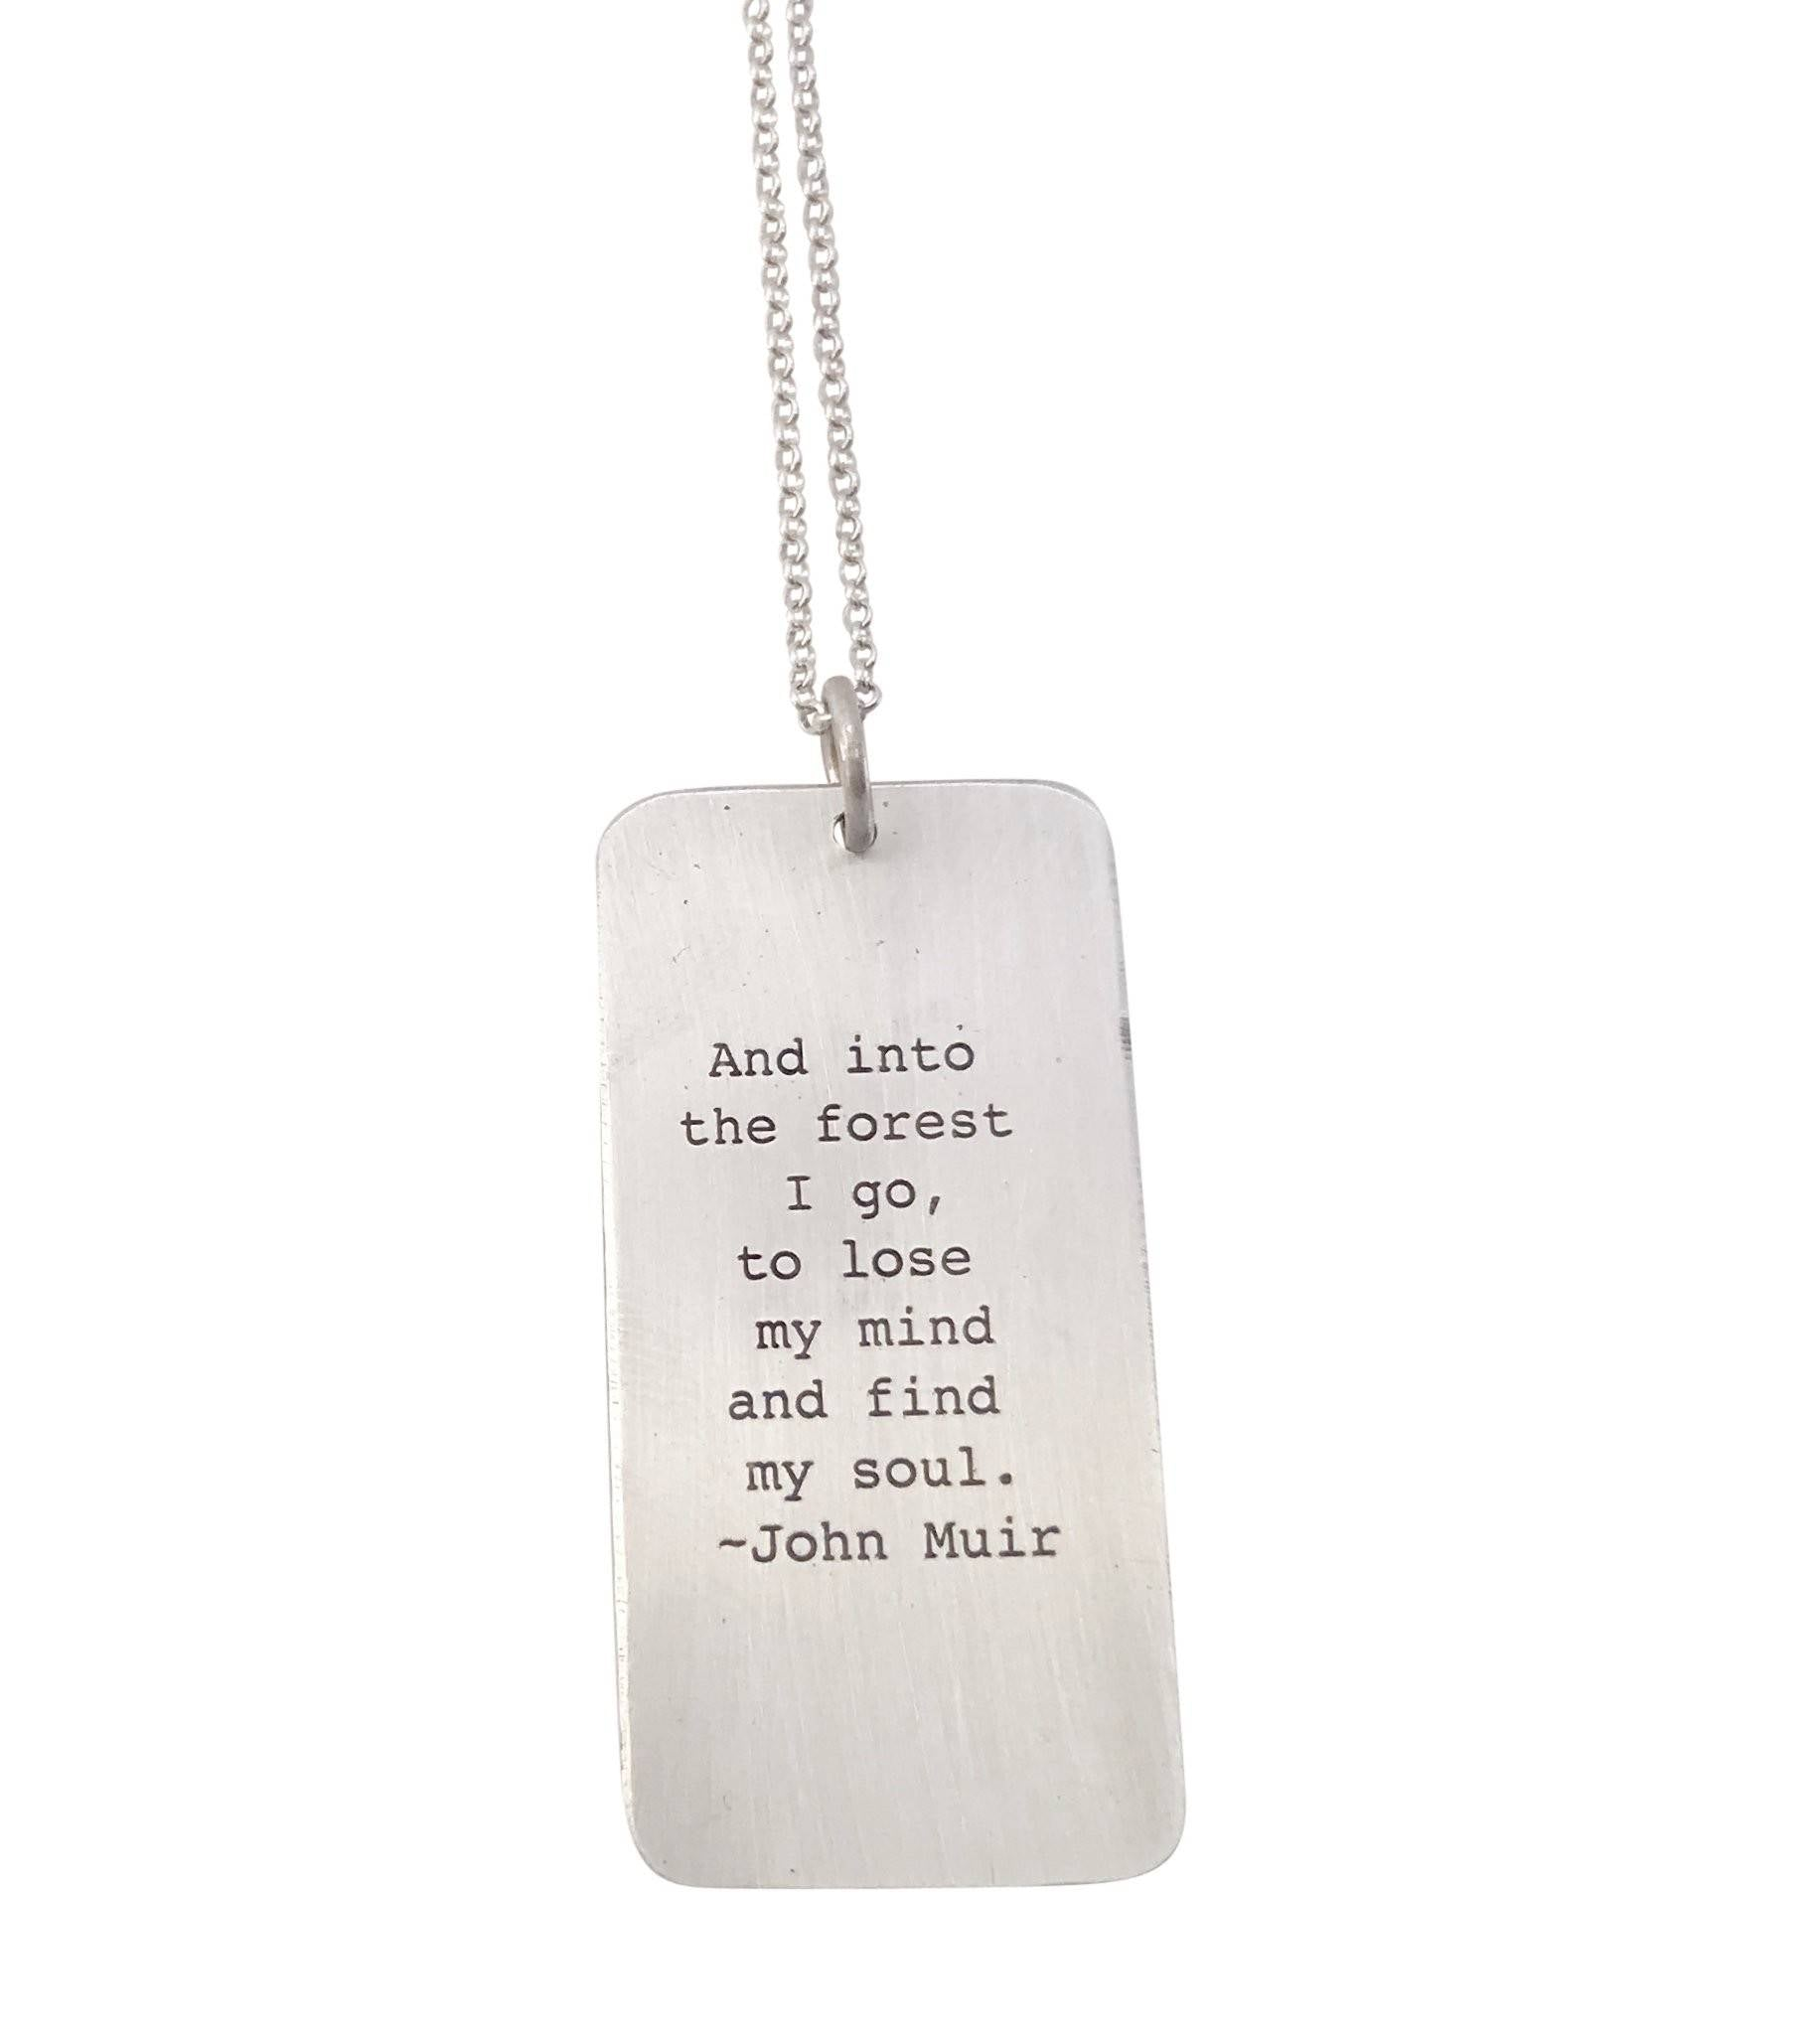 Thistle Pendant with John Muir Quote